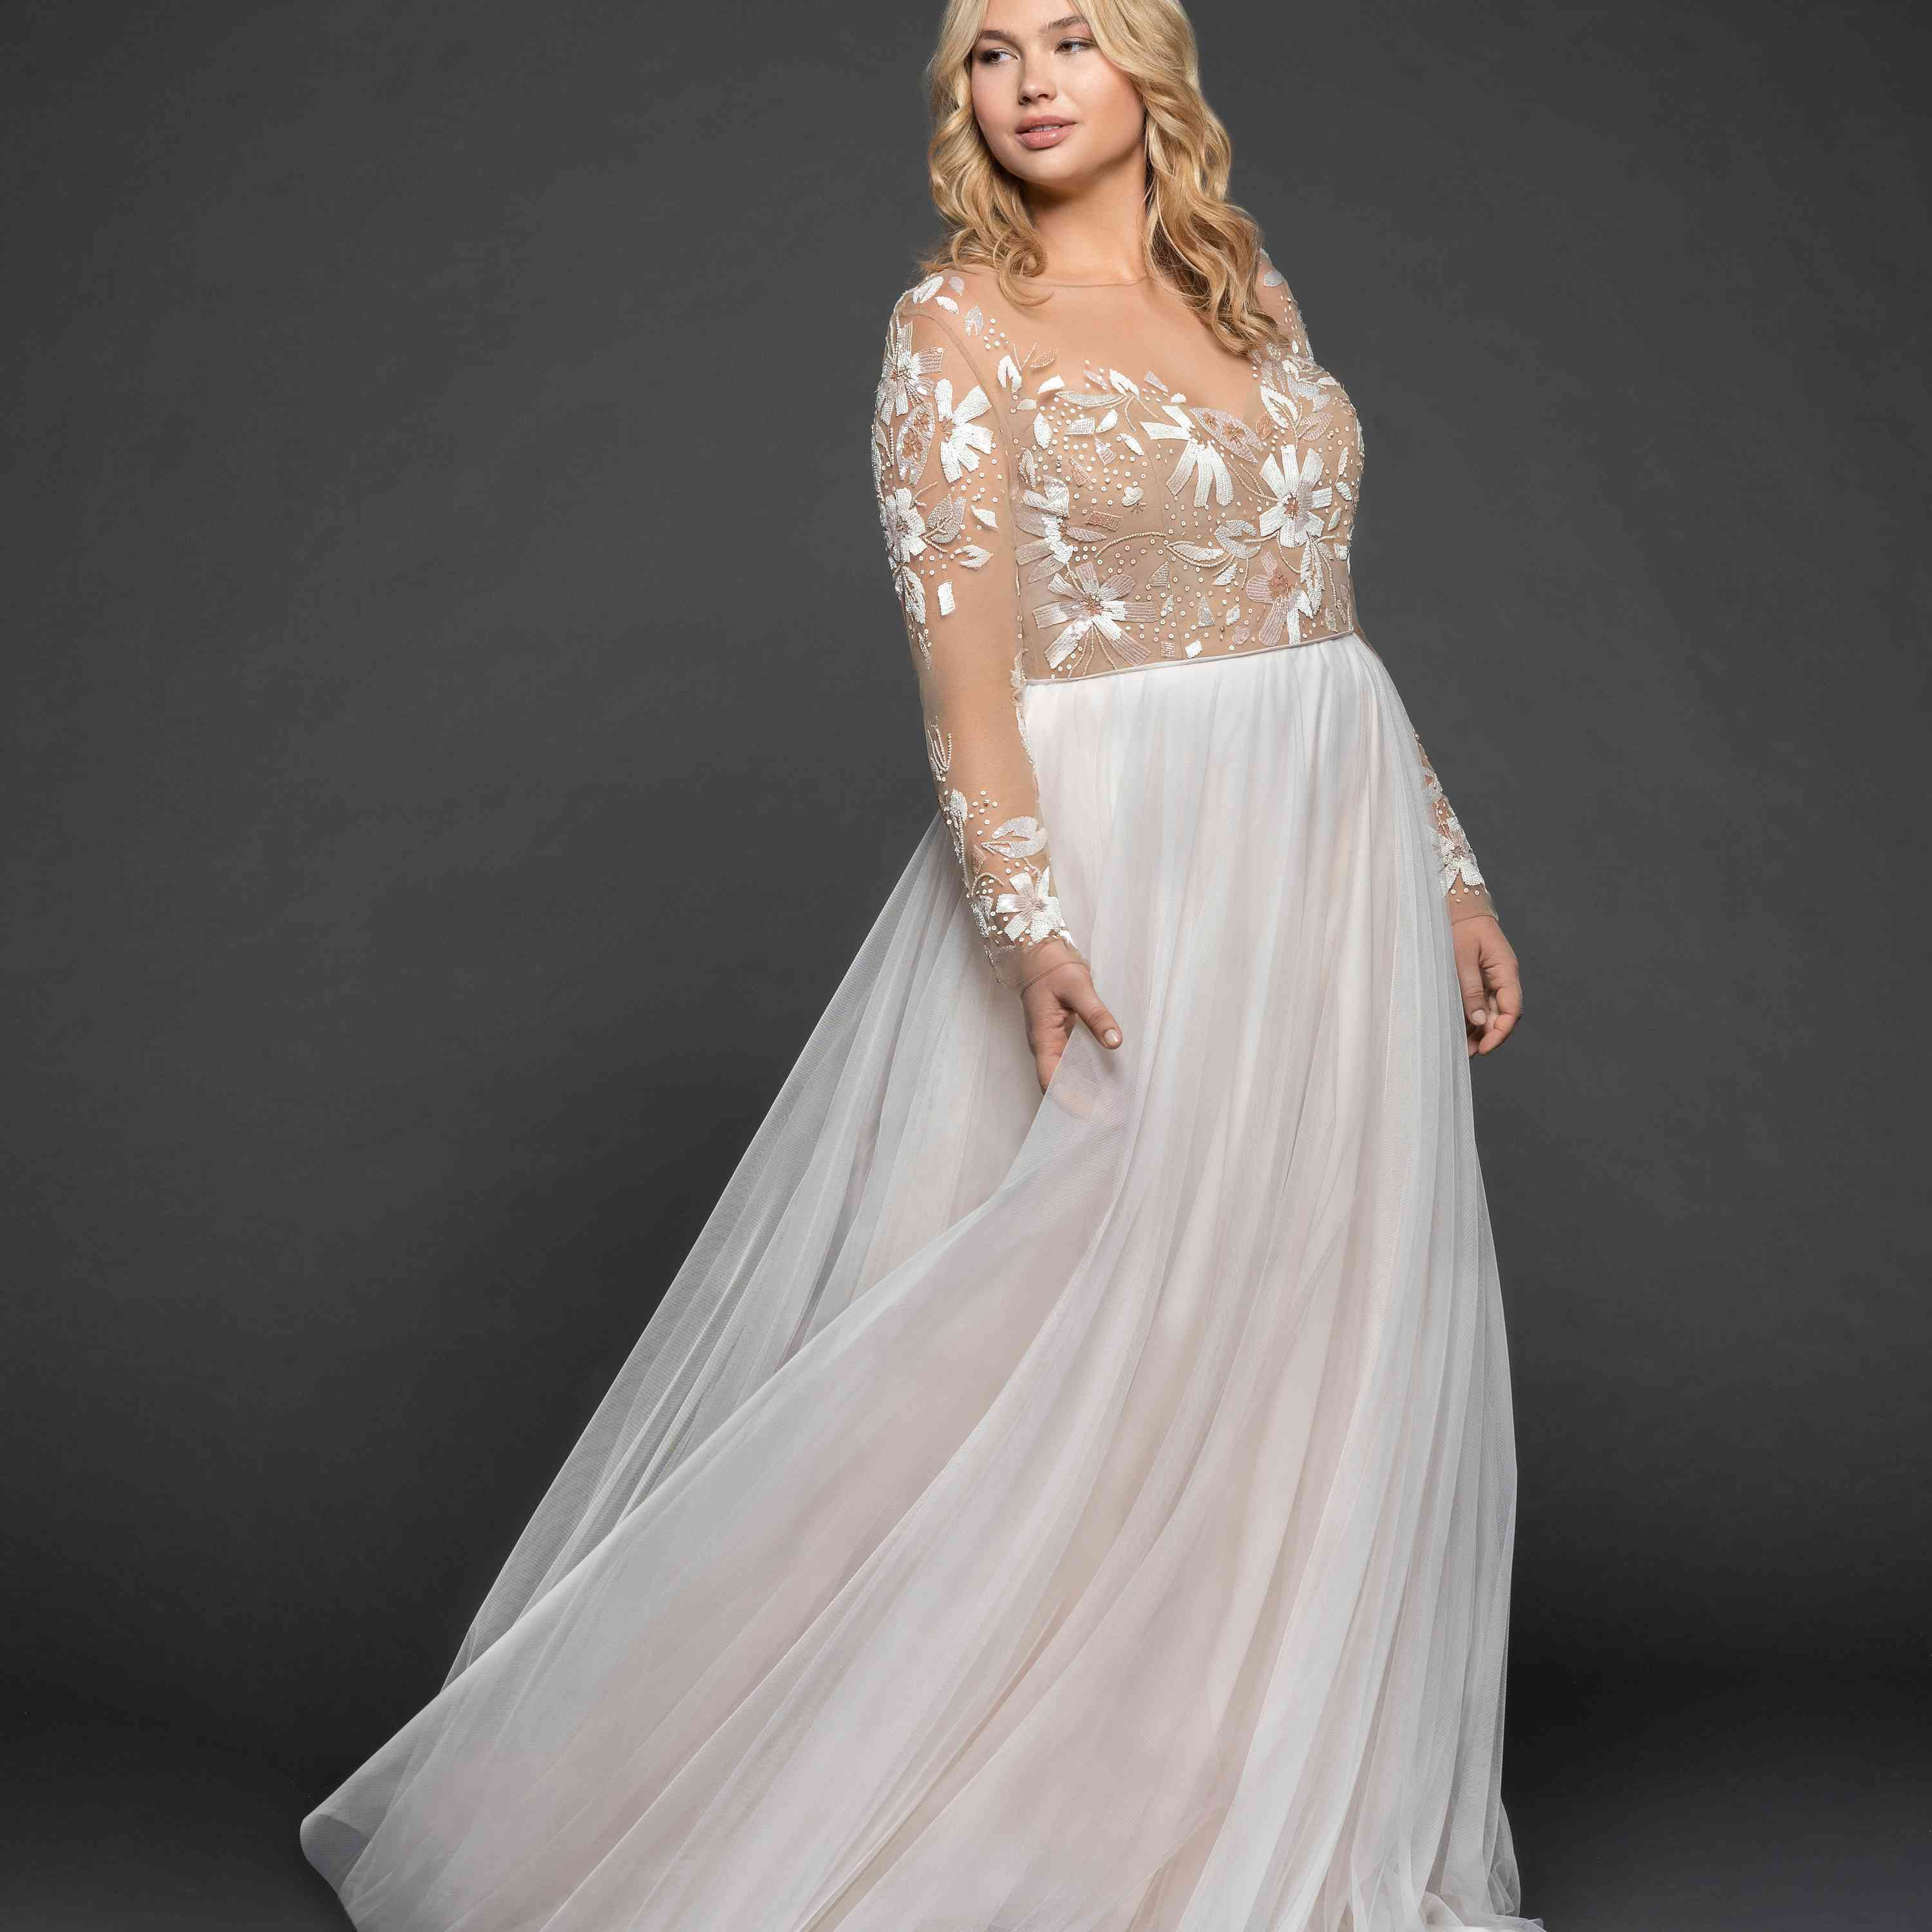 Plus size model in wedding gown with floral embellished illusion bodice